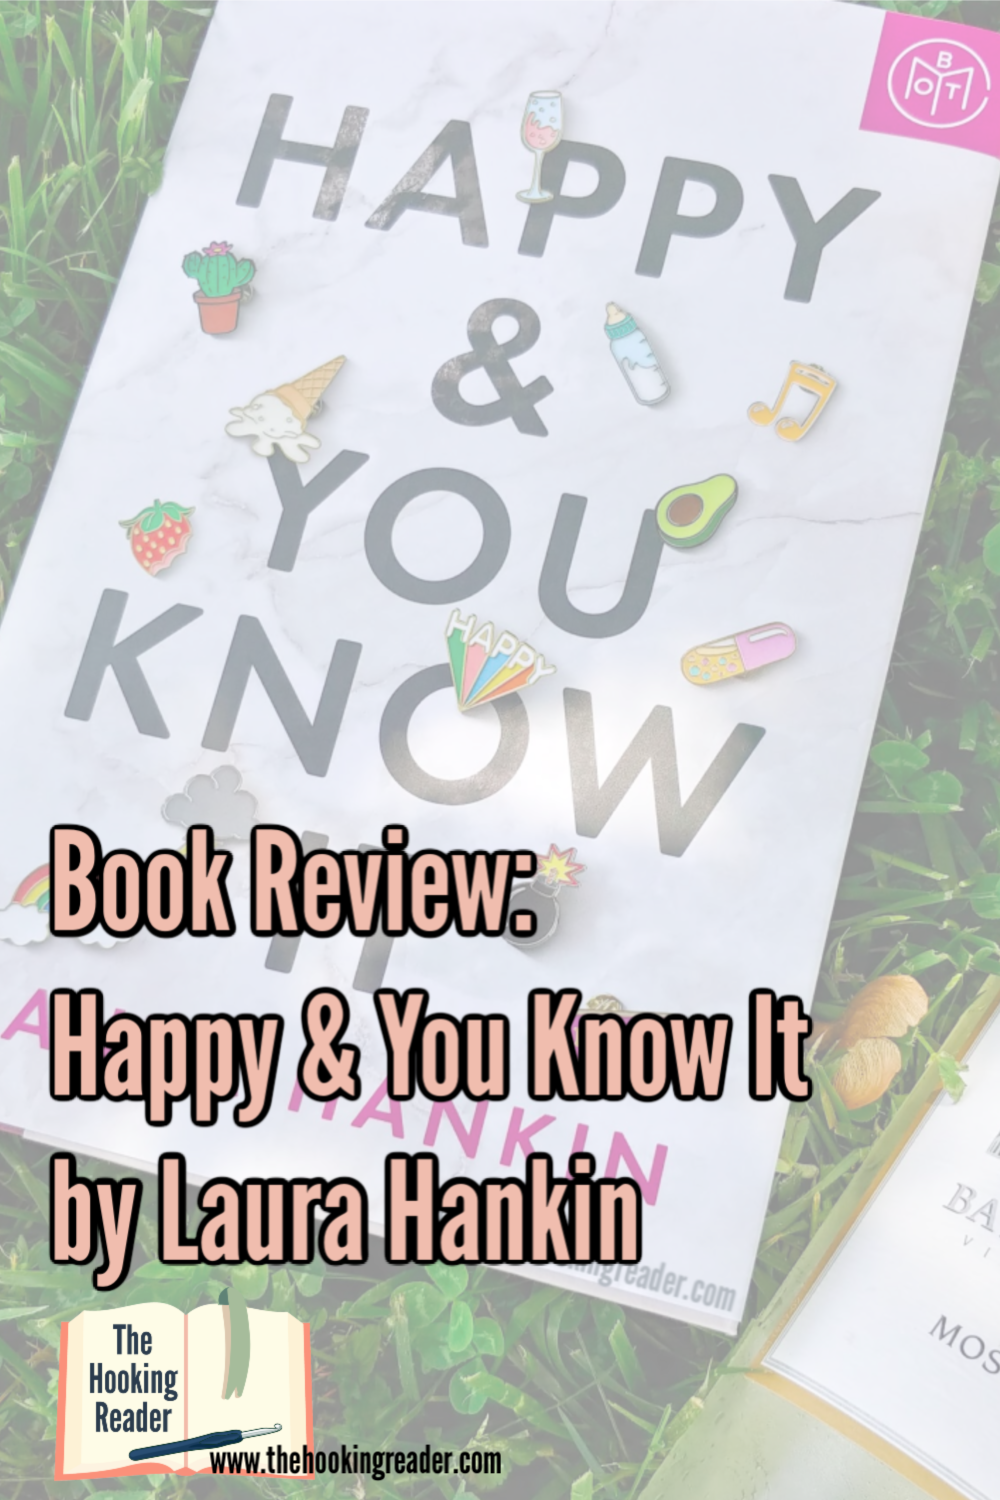 Book Review: Happy & You Know It by Laura Hankin